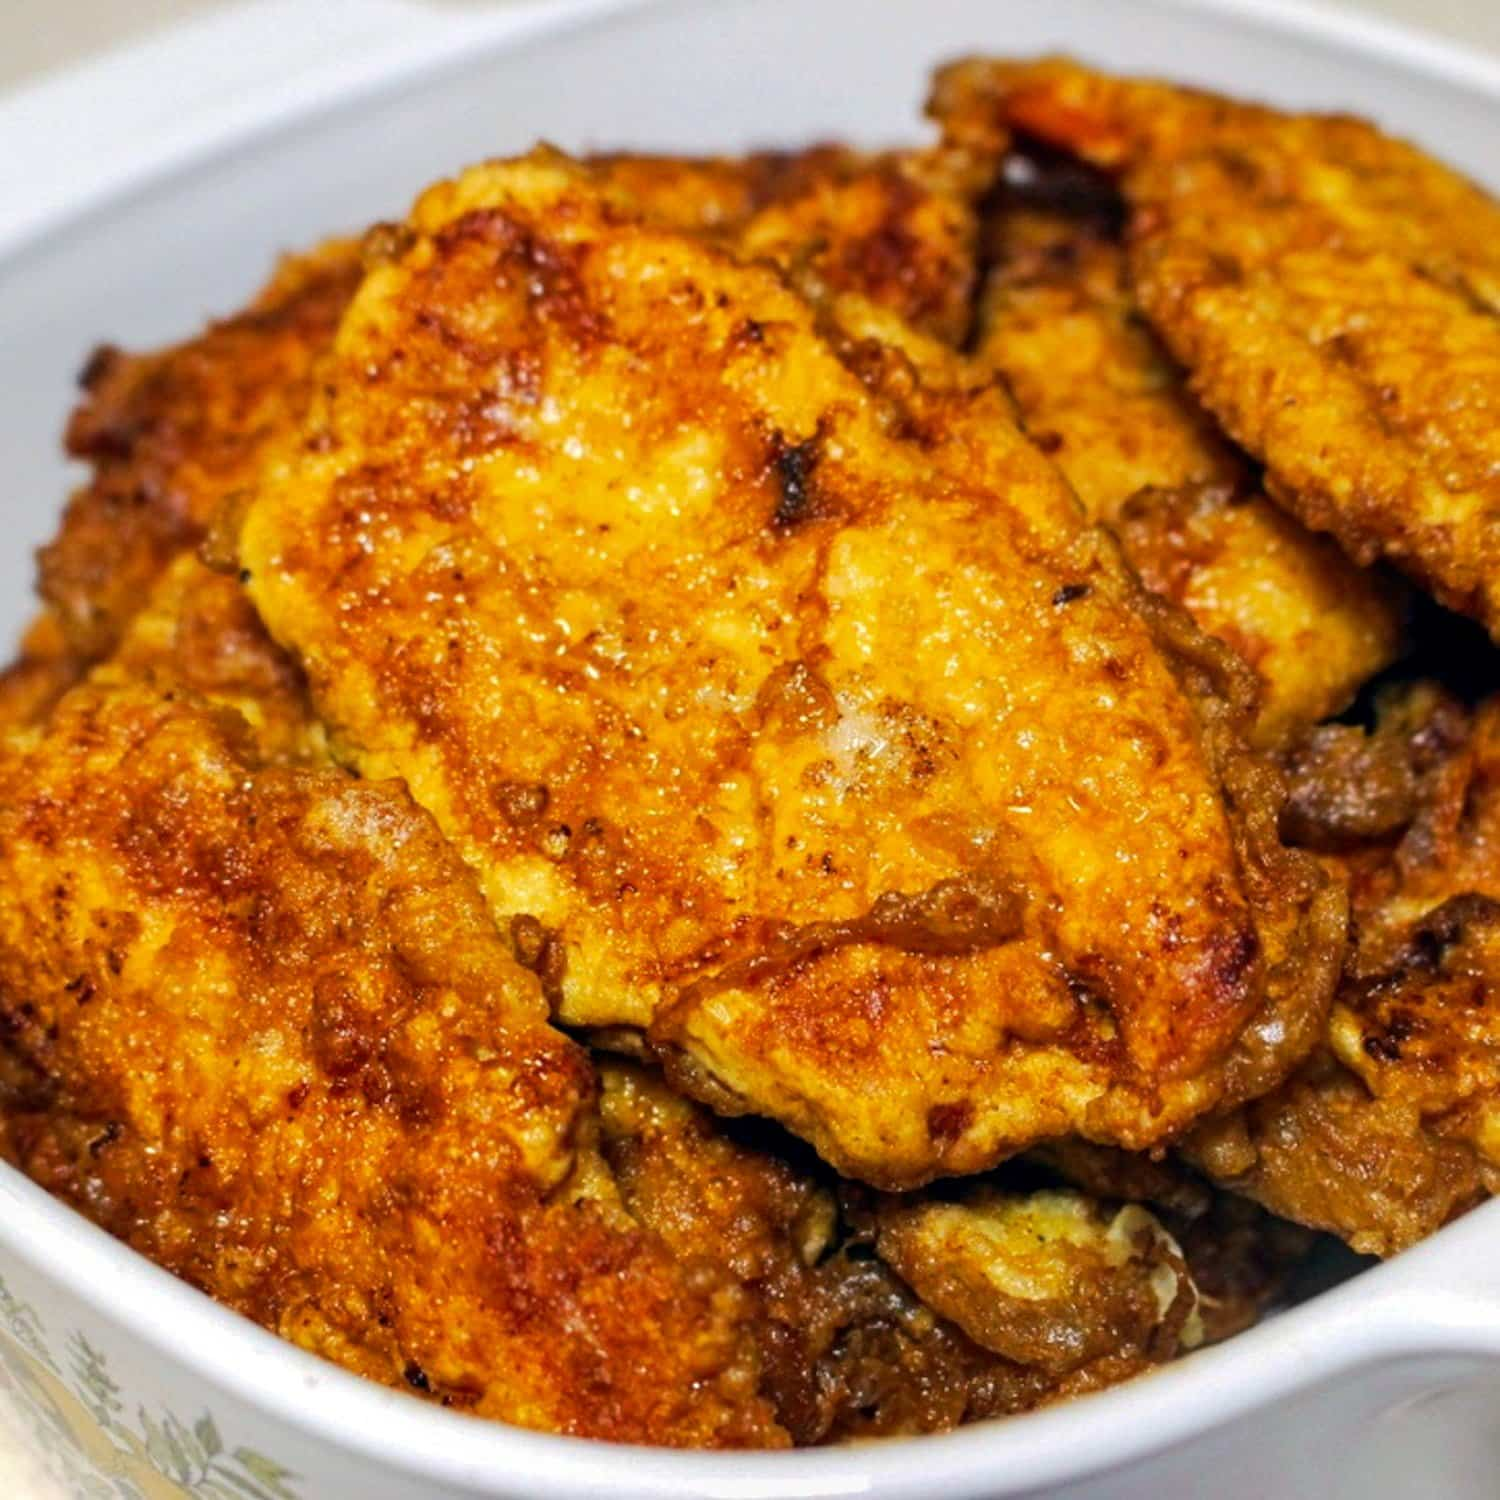 Learn how to make easy chicken breast schnitzel from scratch so you can ditch those chicken nuggets you buy from the store. Delicious and healthier for you, the schnitzels can be served with salads, potatoes in any form, cooked vegetables or just in simple sandwiches. Perfect for picnics, lunches, and dinners.